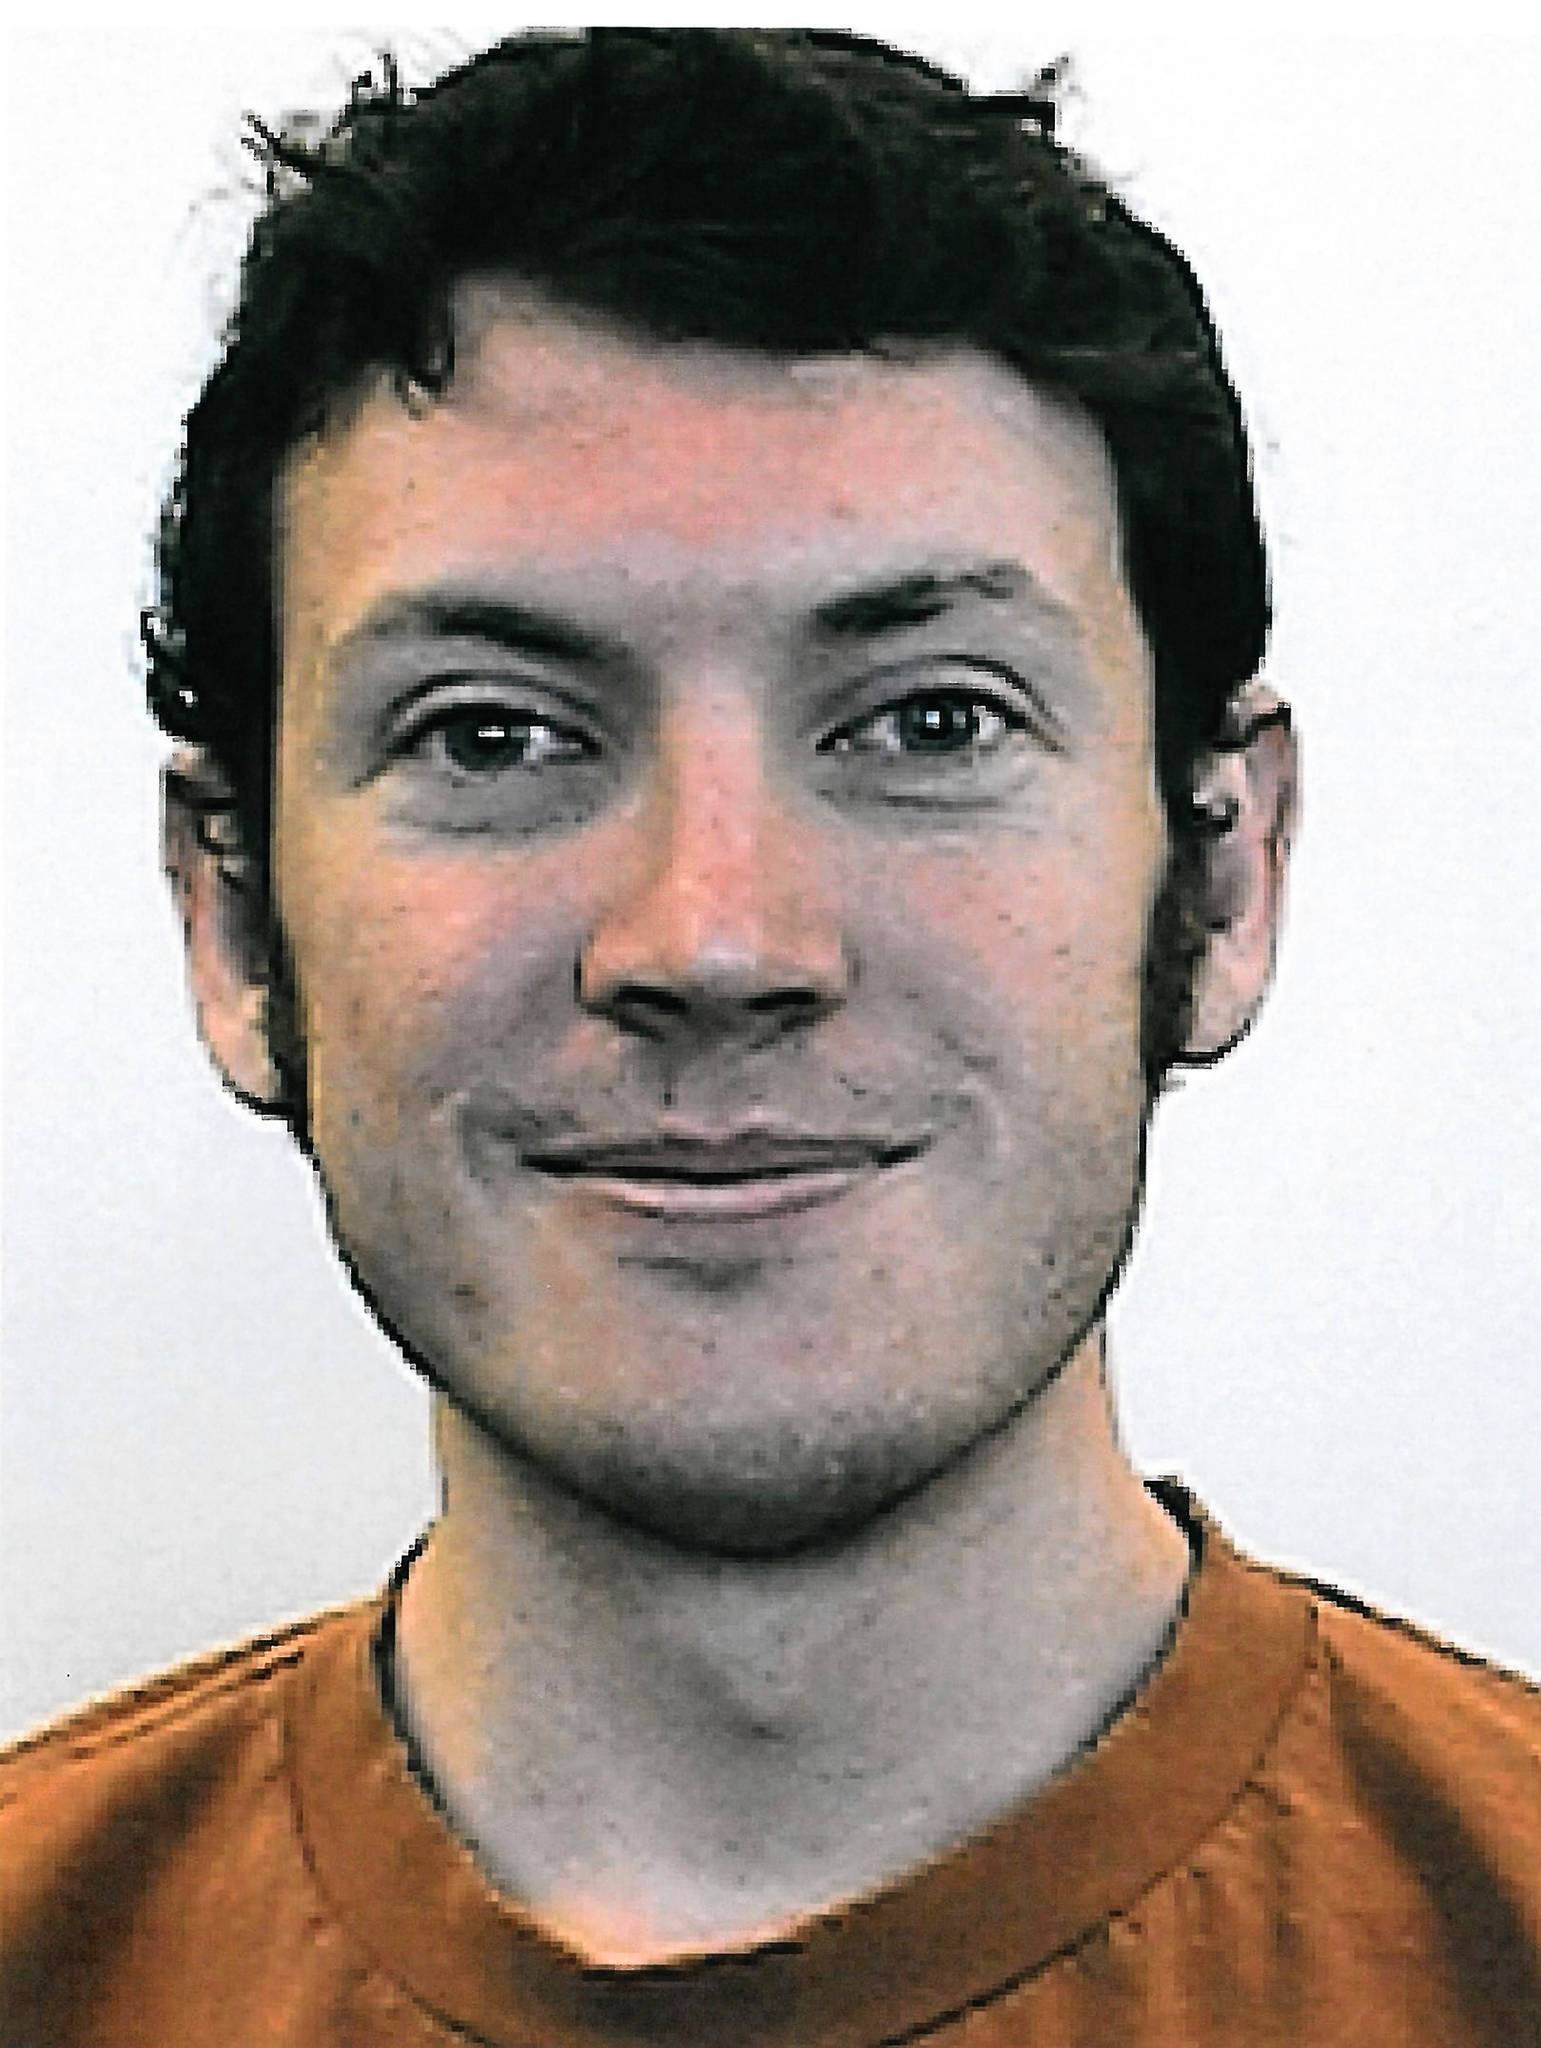 People who knew him say James Holmes, the suspect in the Colorado theater shooting rampage, was a smart, well-mannered neuroscience student who showed no obvious signs that trouble might be brewing.